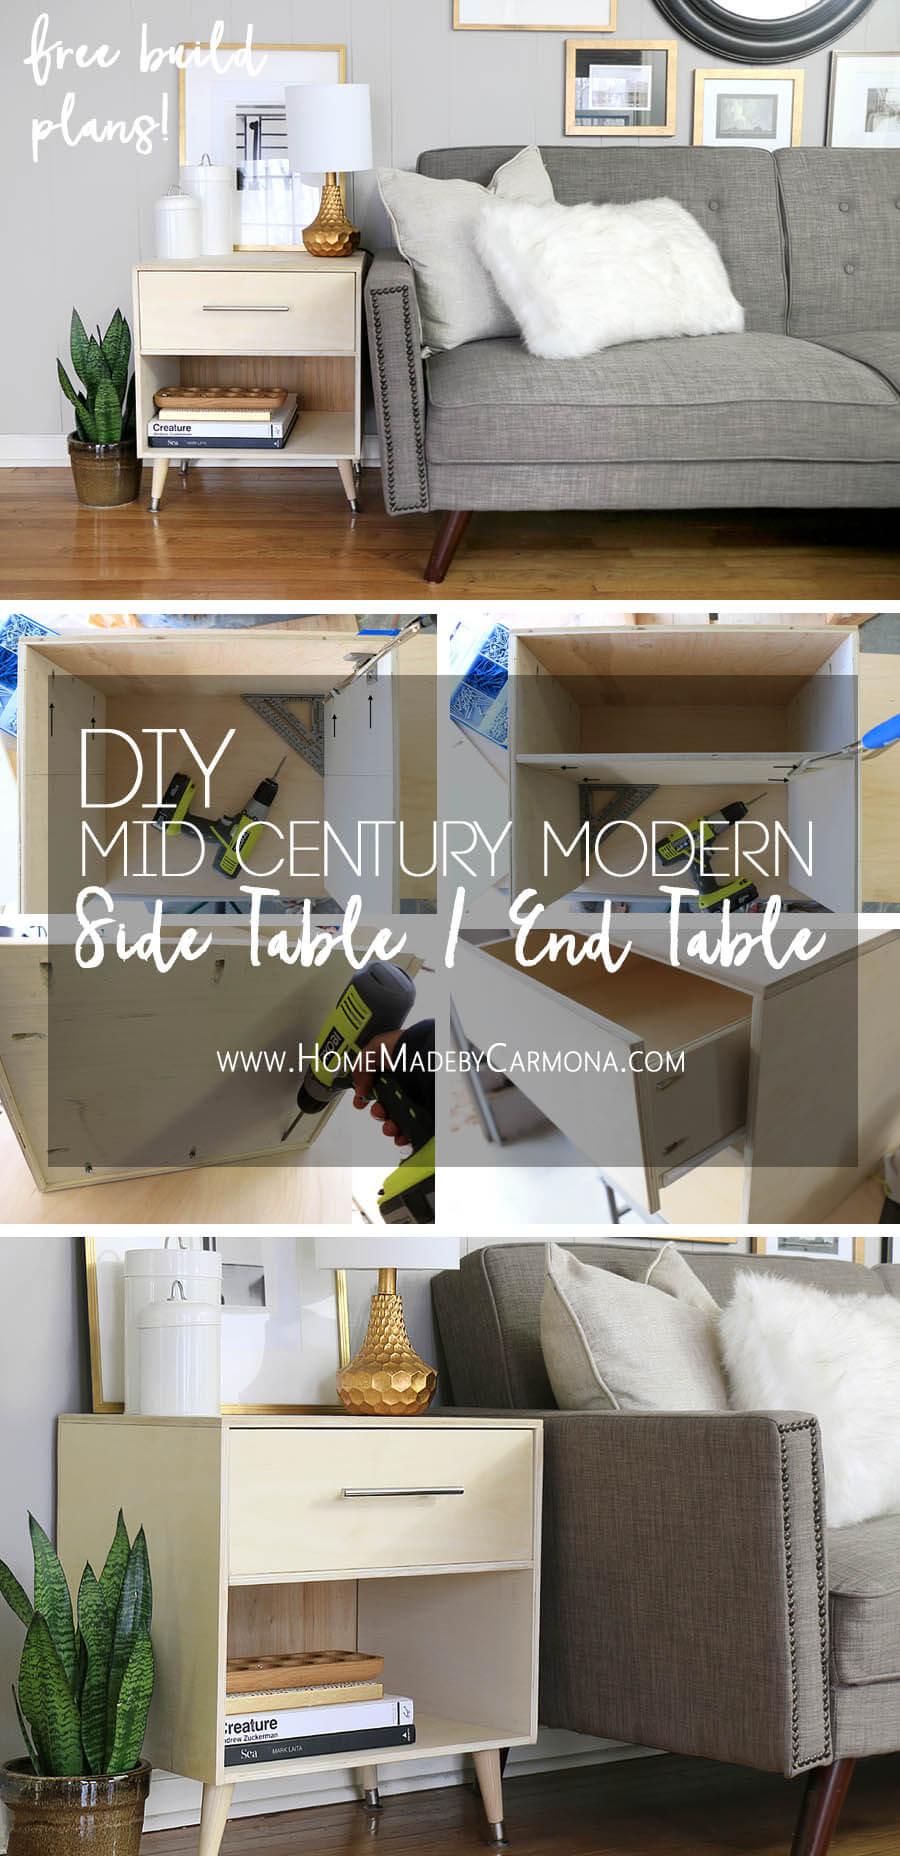 Free Build Plans - Mid-Century Modern Side Table - DIY End Table